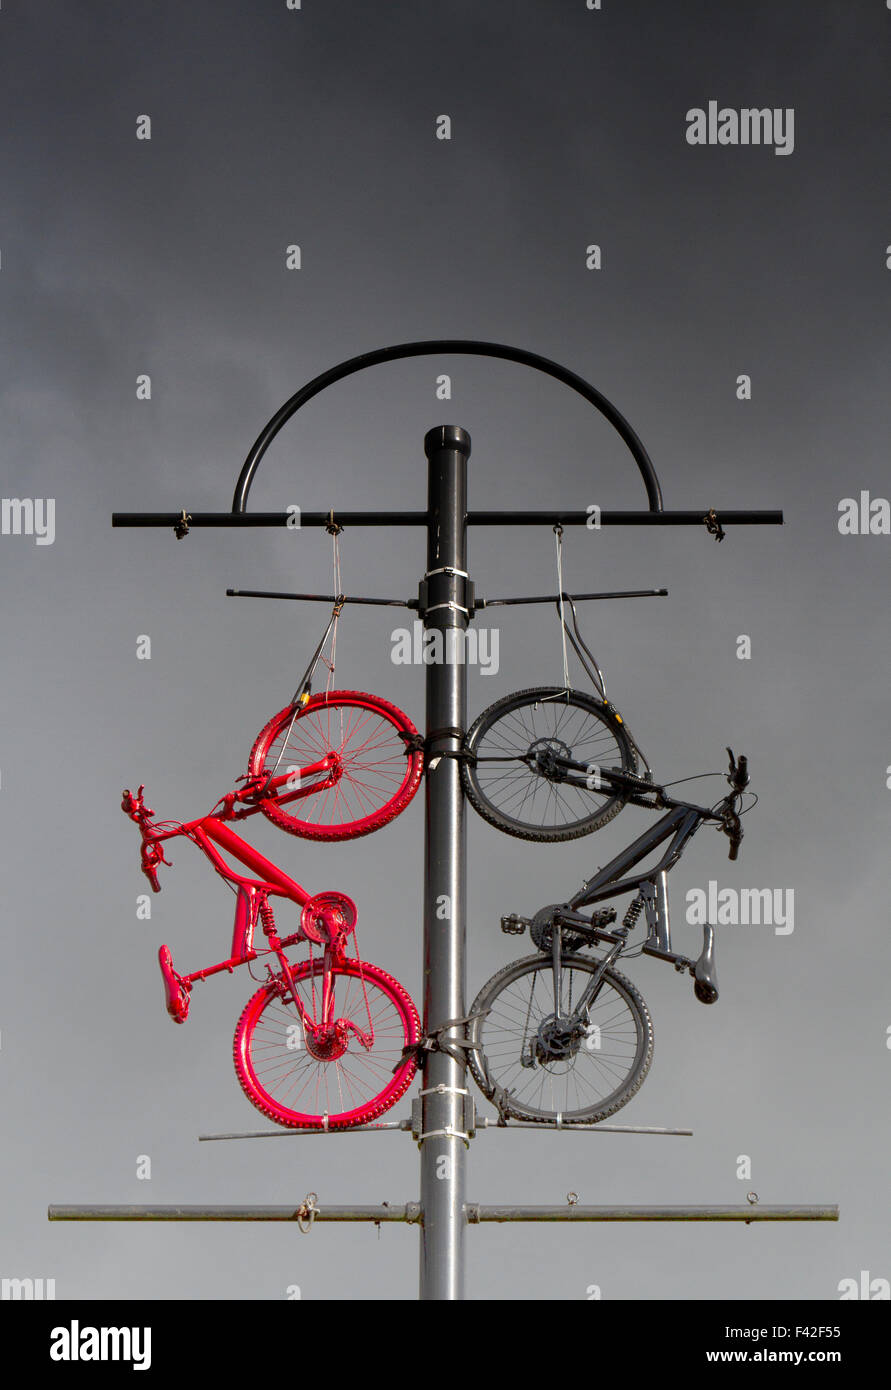 Two bikes used as Street Furniture in Colne Town Centre, Lancashire, UK - Stock Image